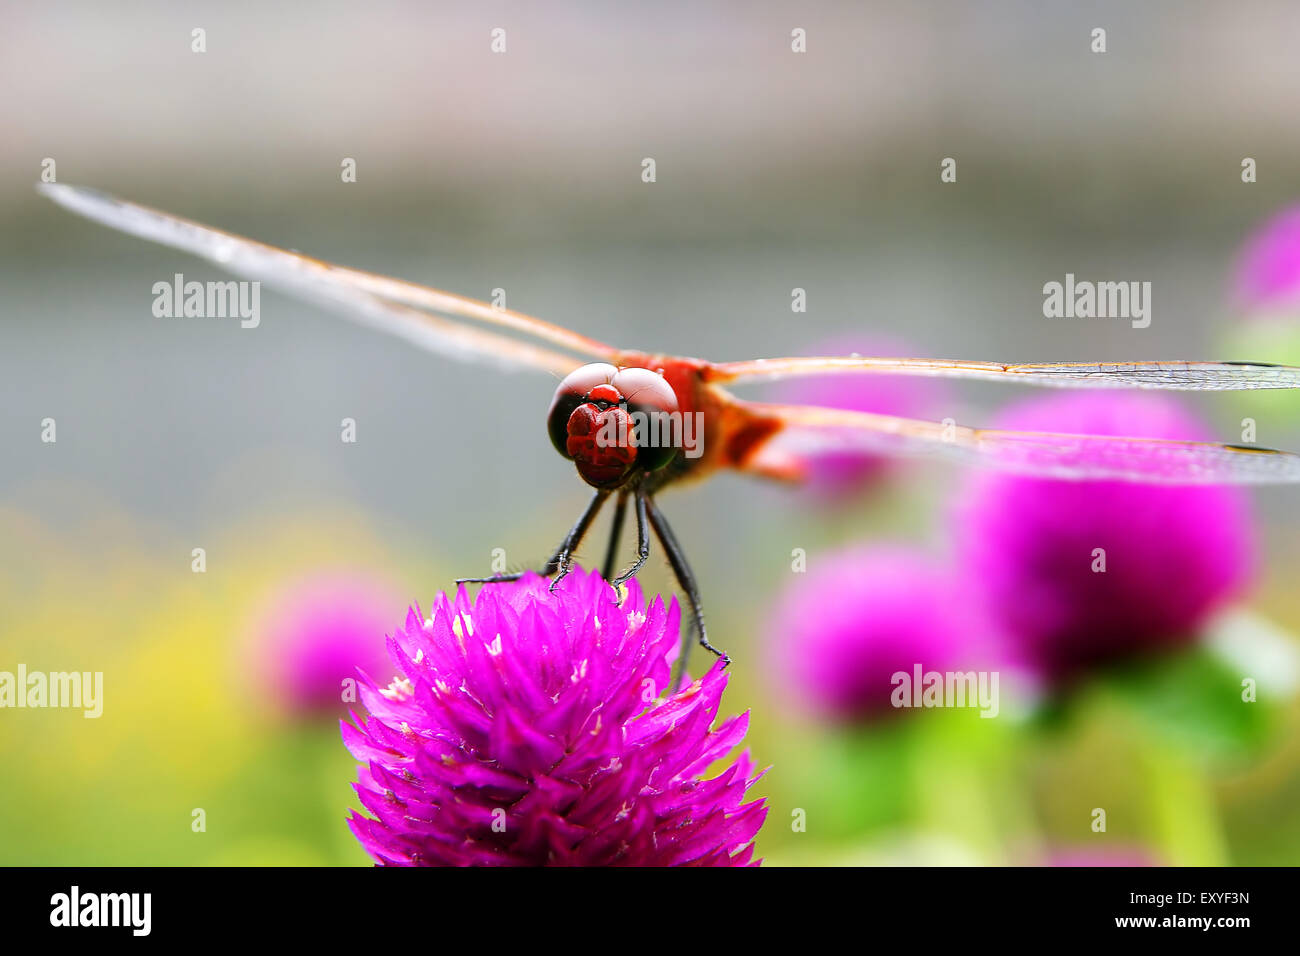 Dragonfly on red flower Stock Photo